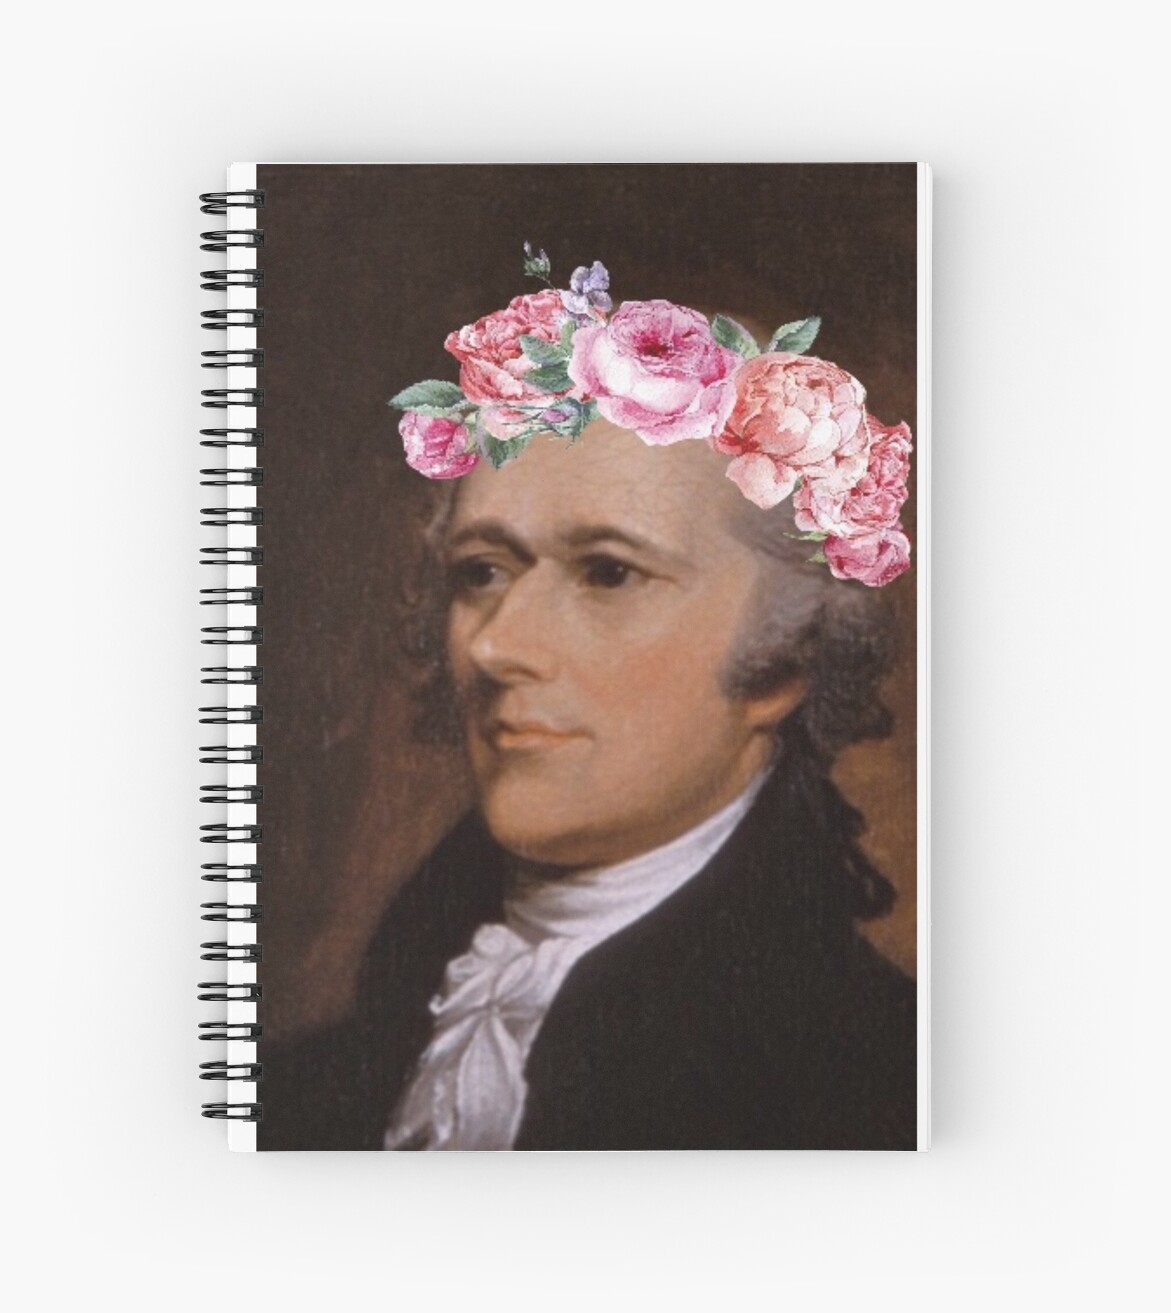 Alexander Hamilton Flower Crown Cute Spiral Notebooks By